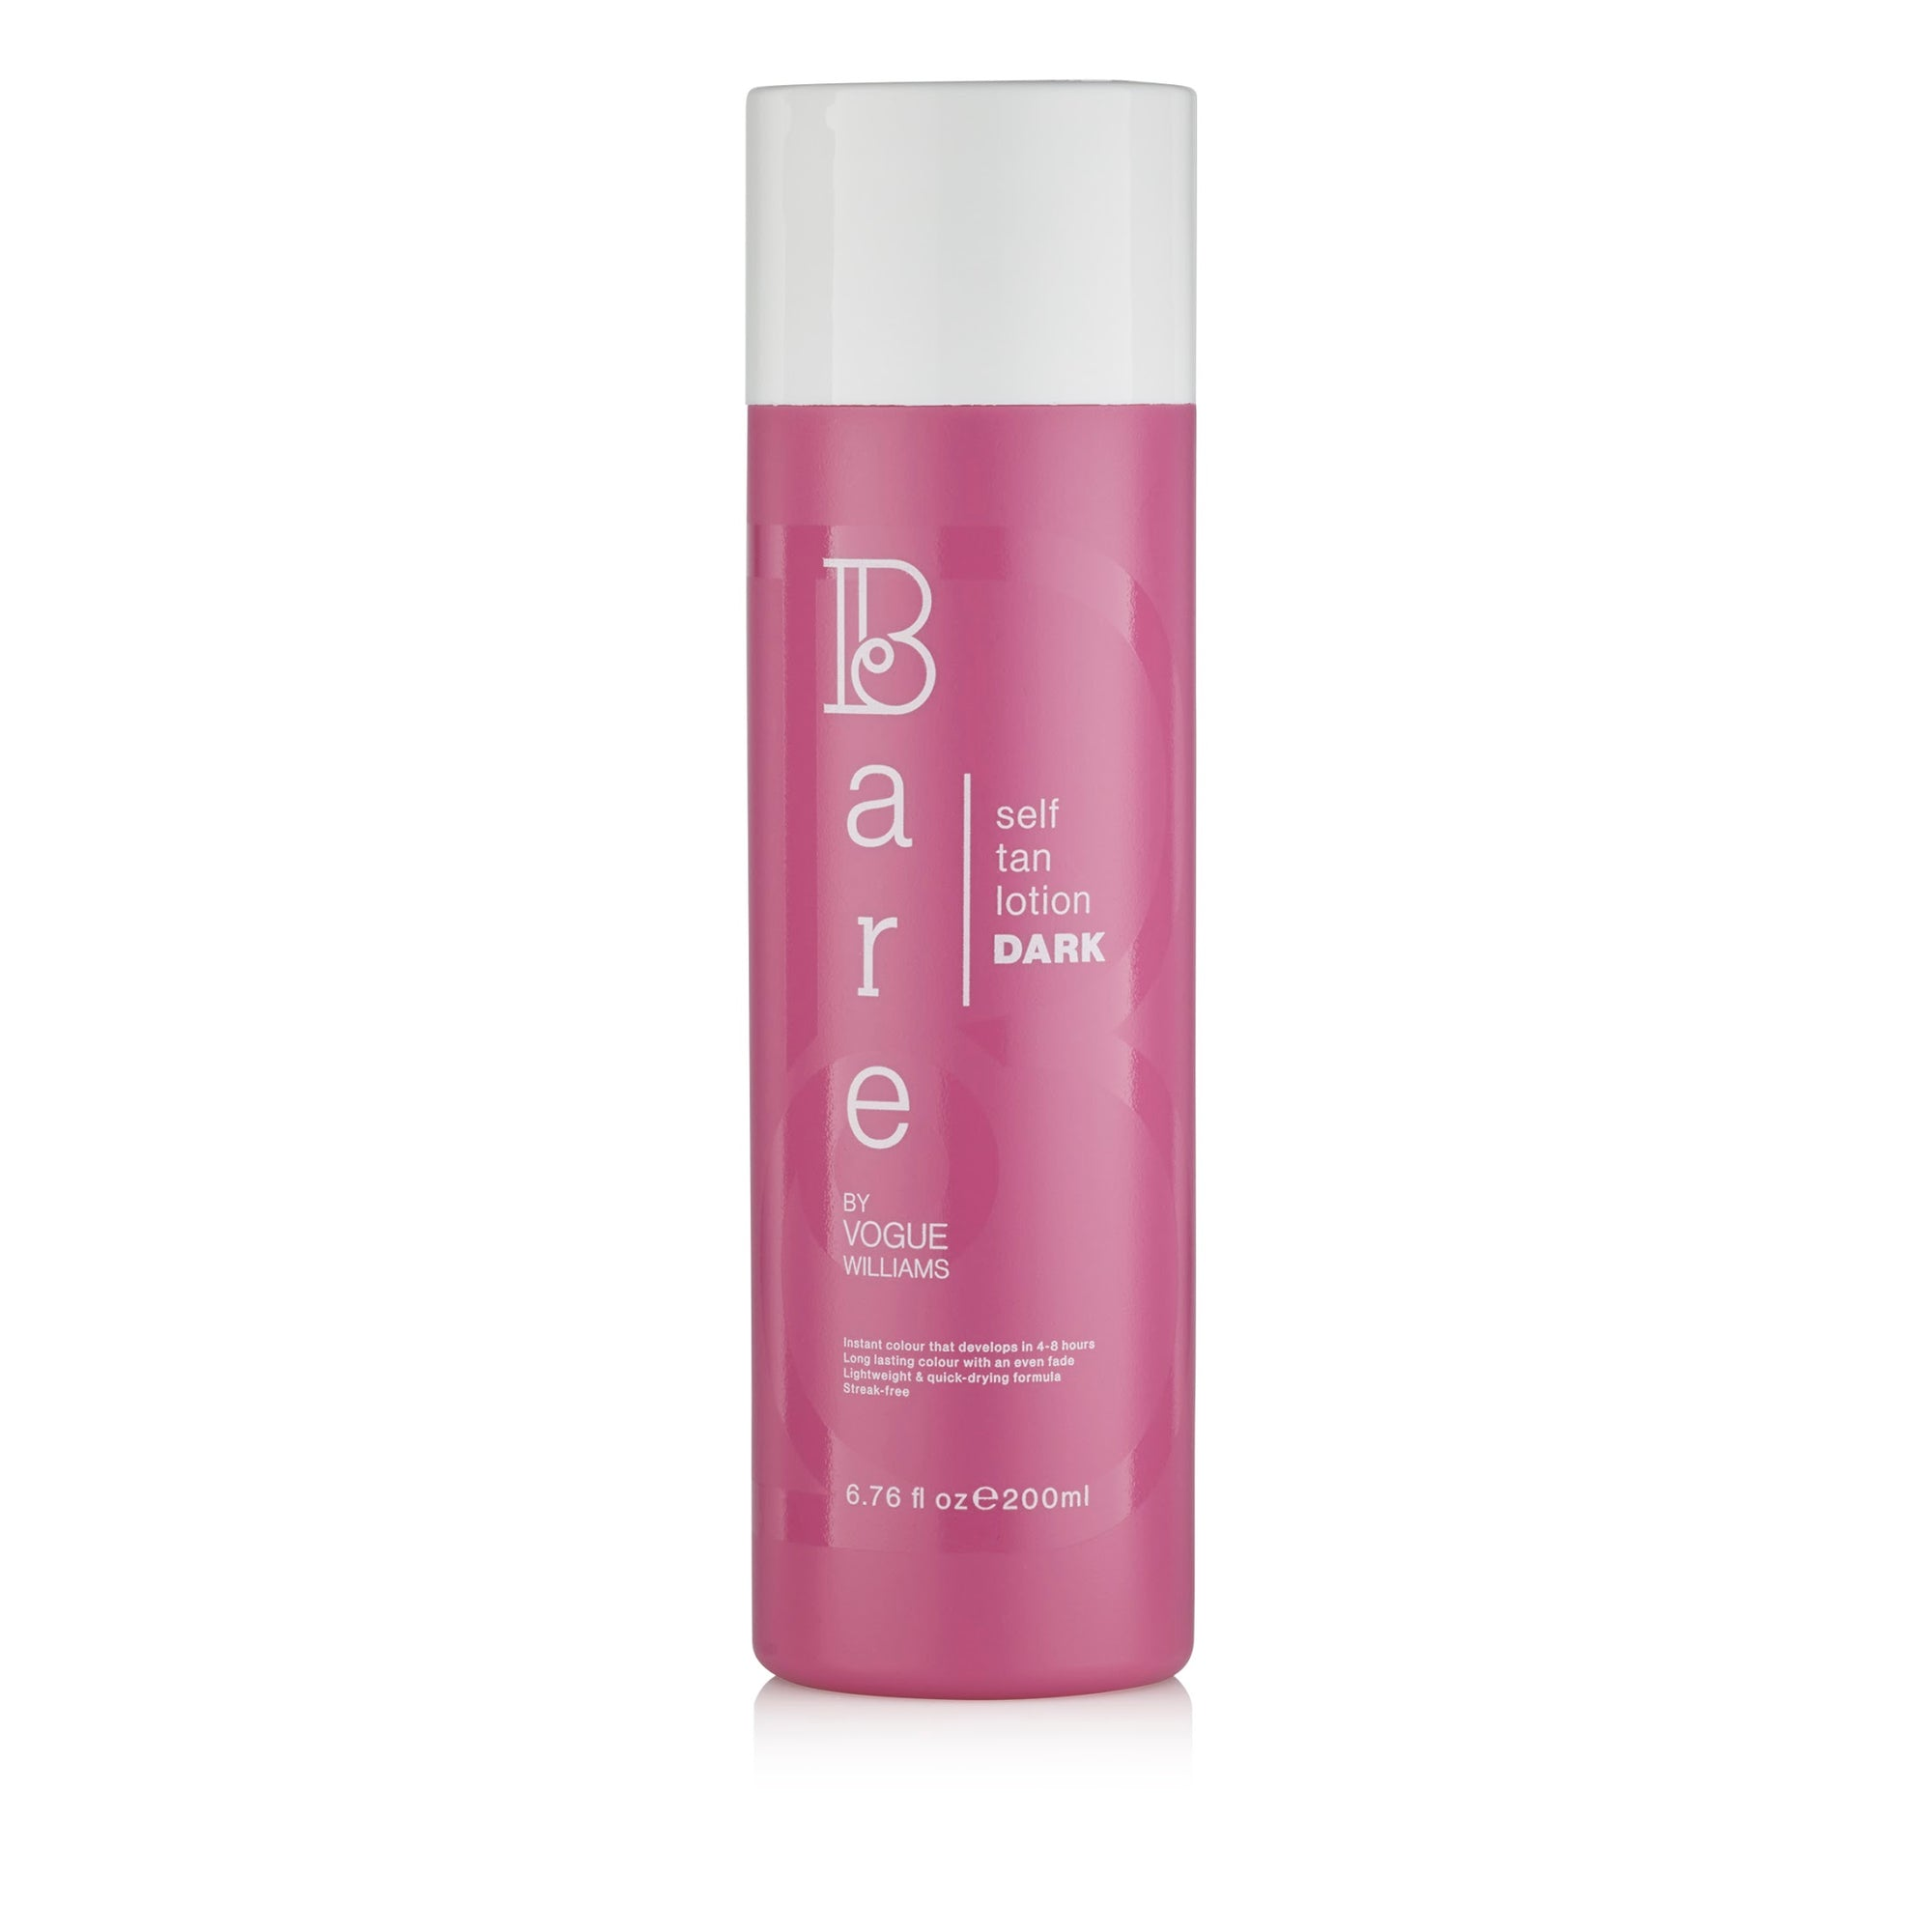 Bare by Vogue - Self Tan Lotion - Dark - 200ml